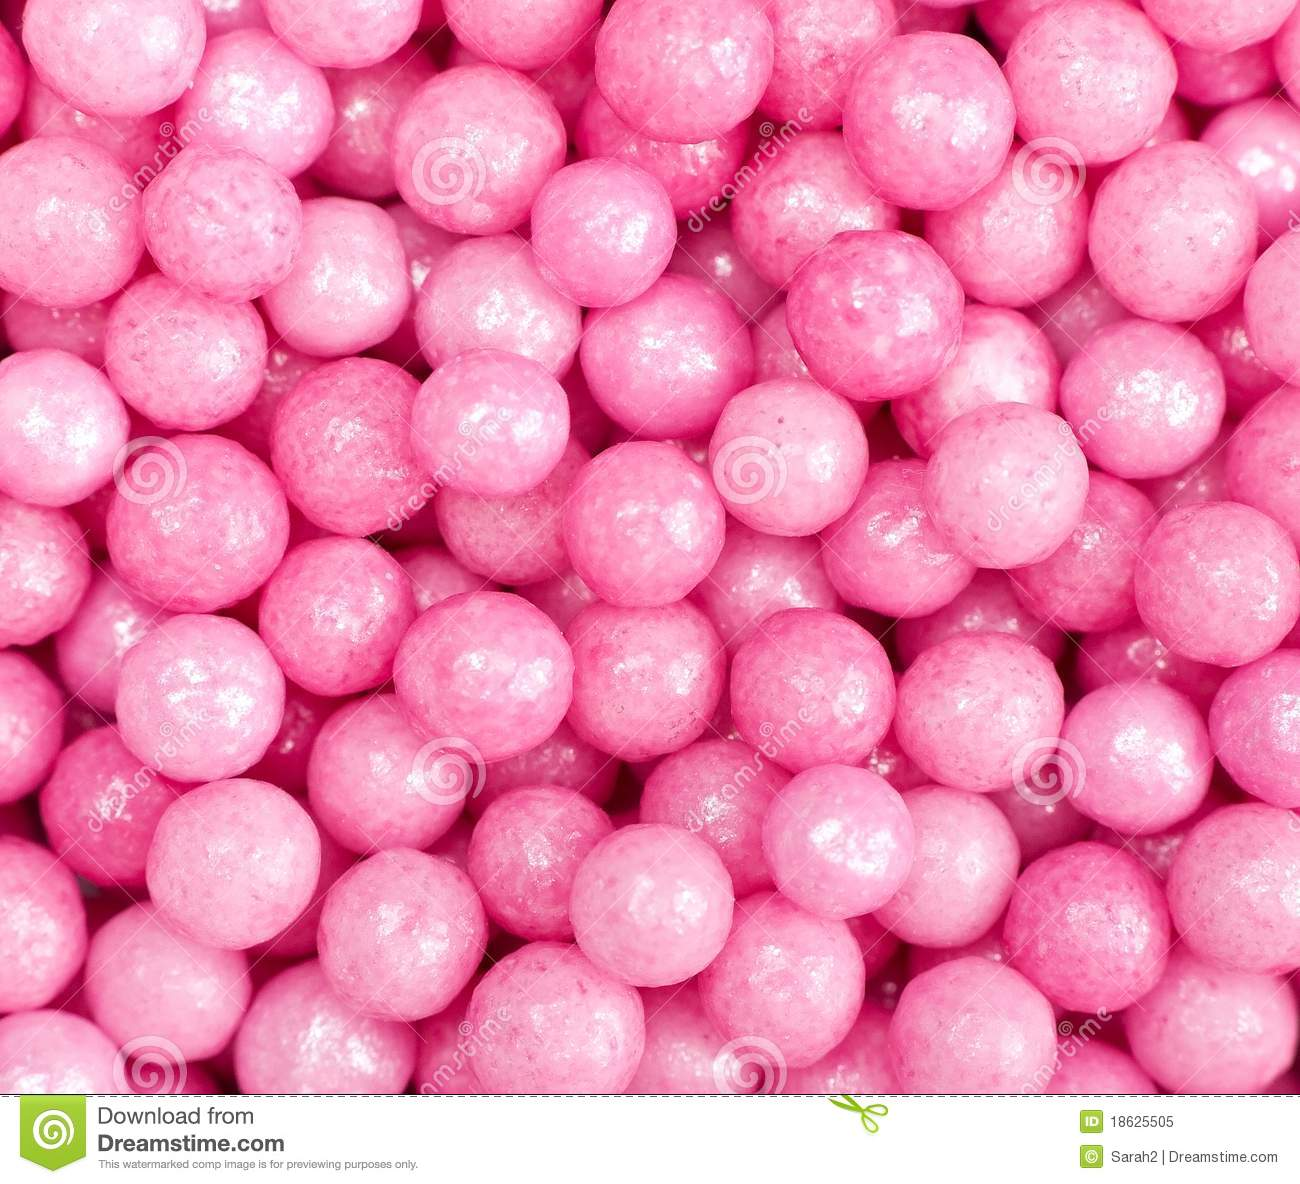 Cake Decorating Sugar Balls : Pink Sugar Ball Cake Decorations Royalty Free Stock Photo ...